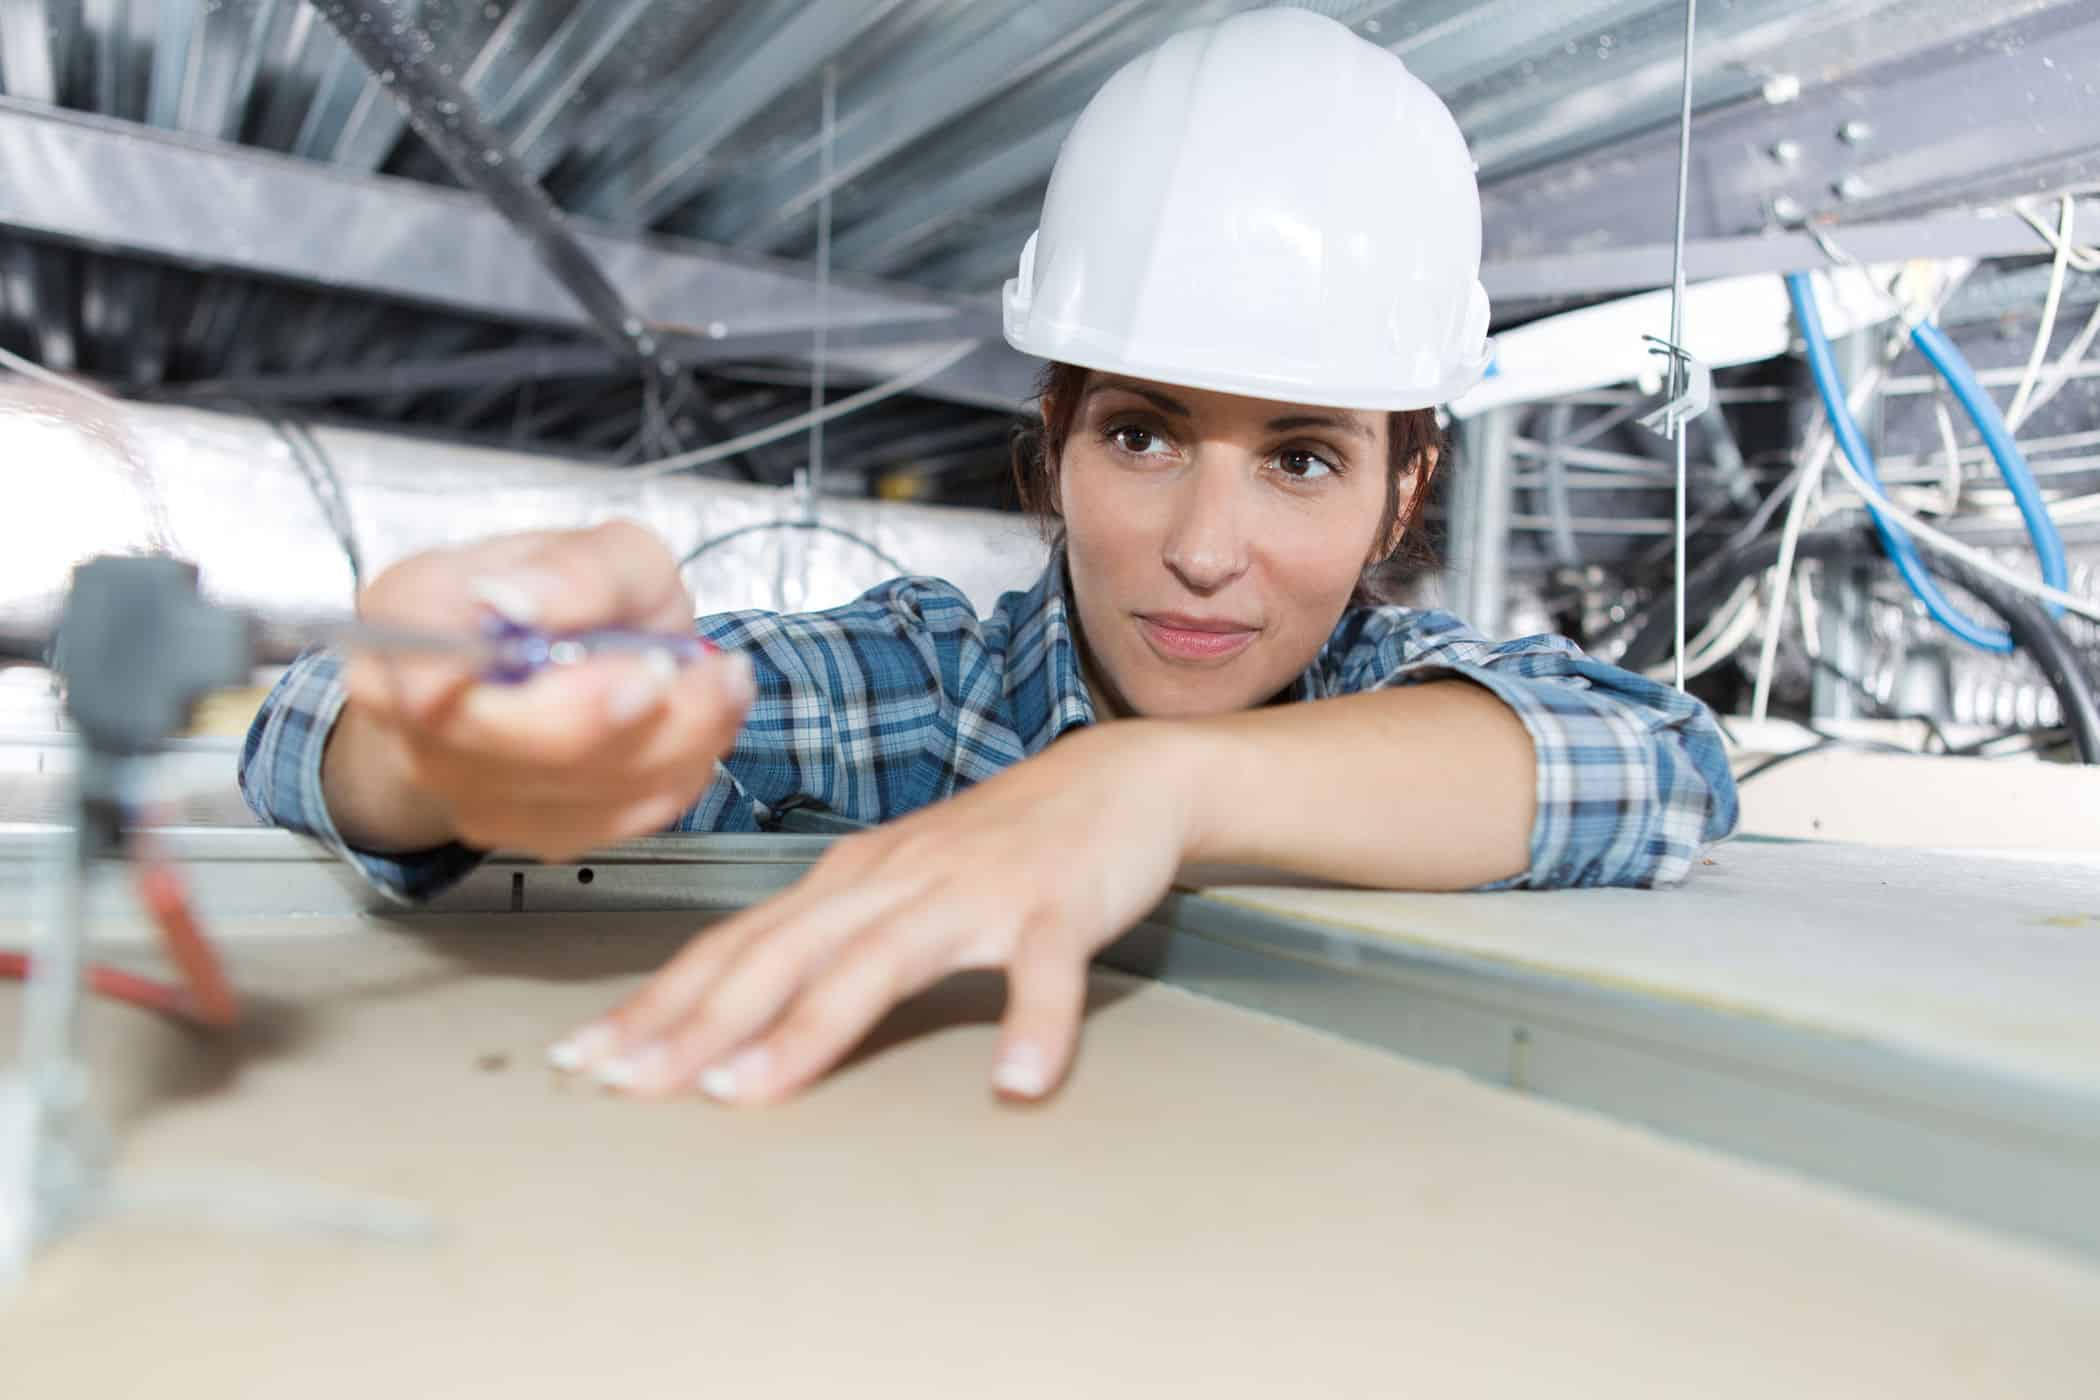 Women and Licensing in the Trades | PHCEid International